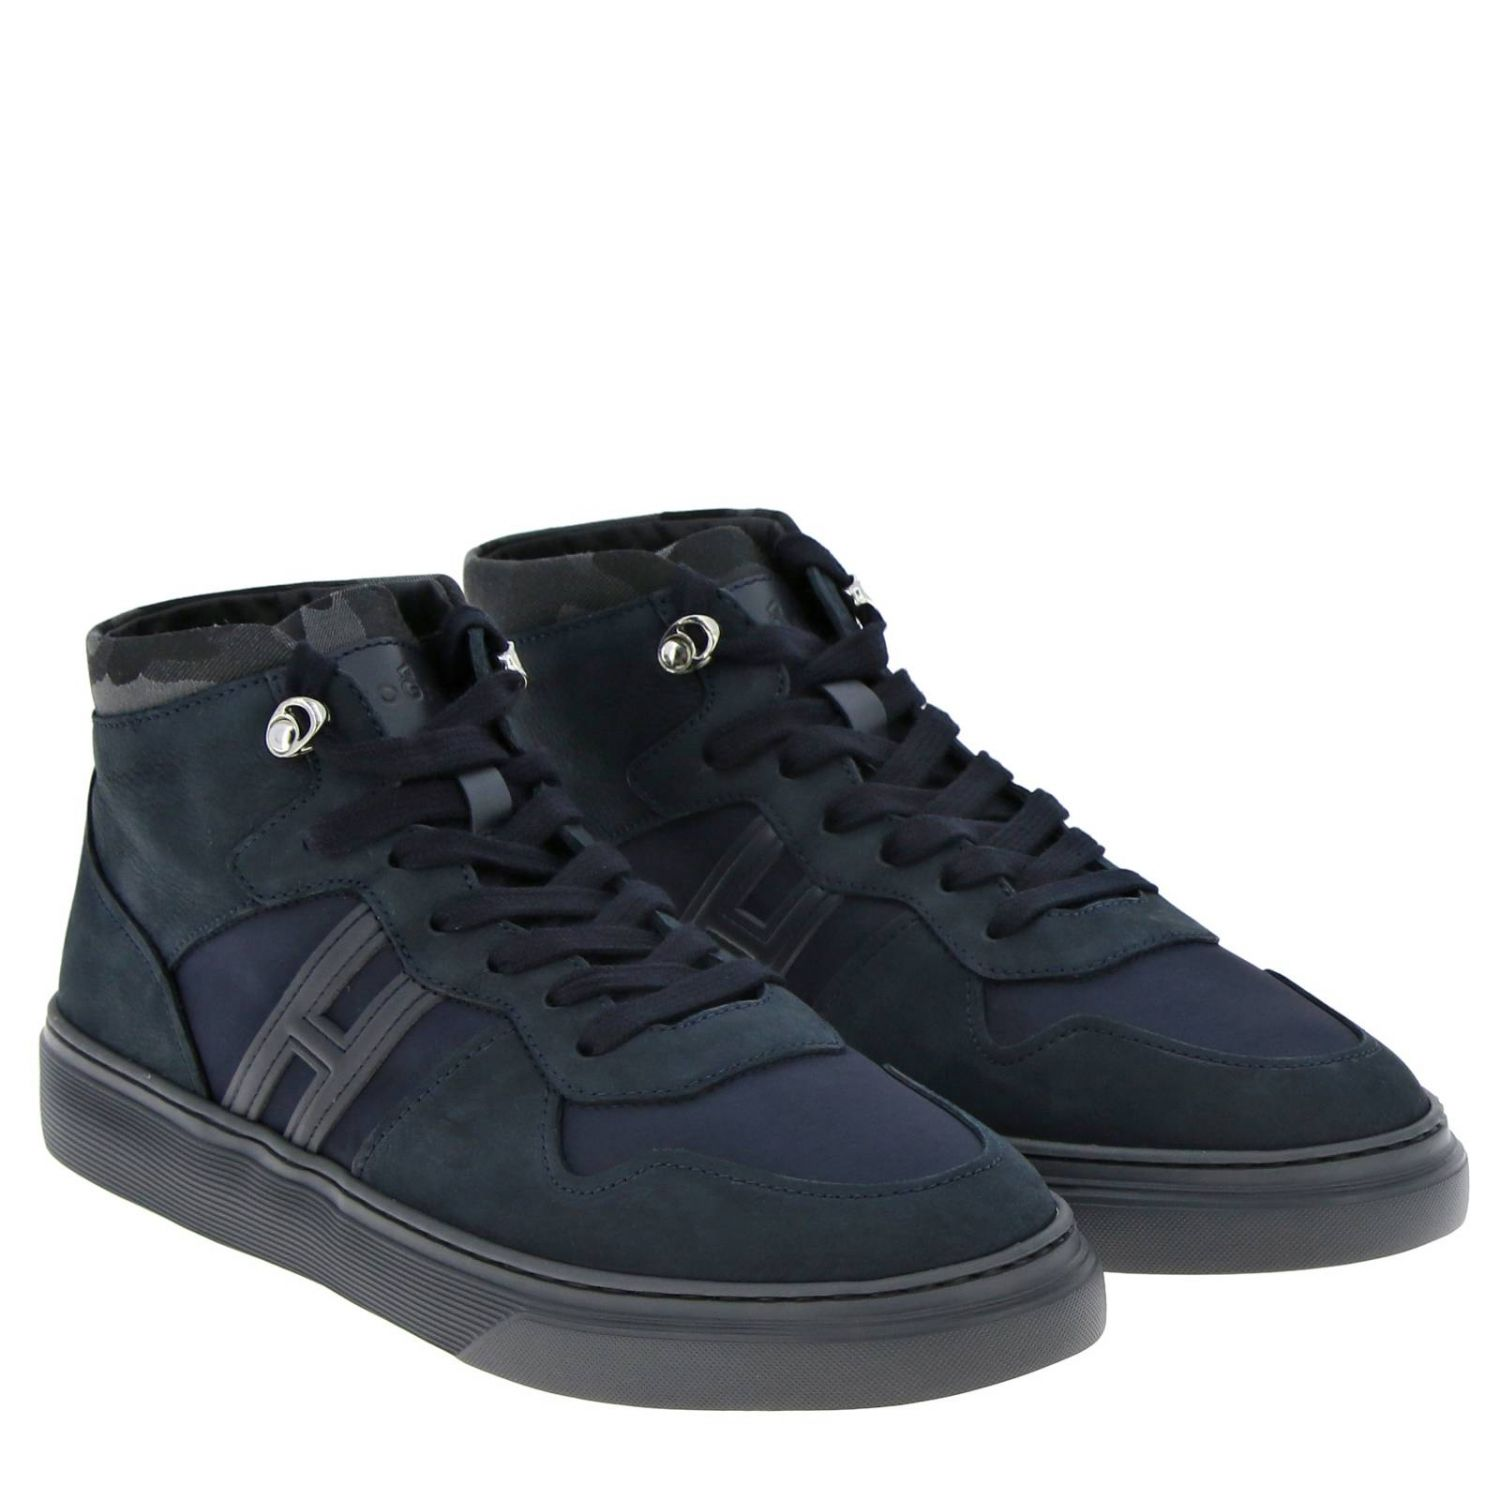 365 suede and nylon Sneakers Hogan Basket with camouflage detail blue 2